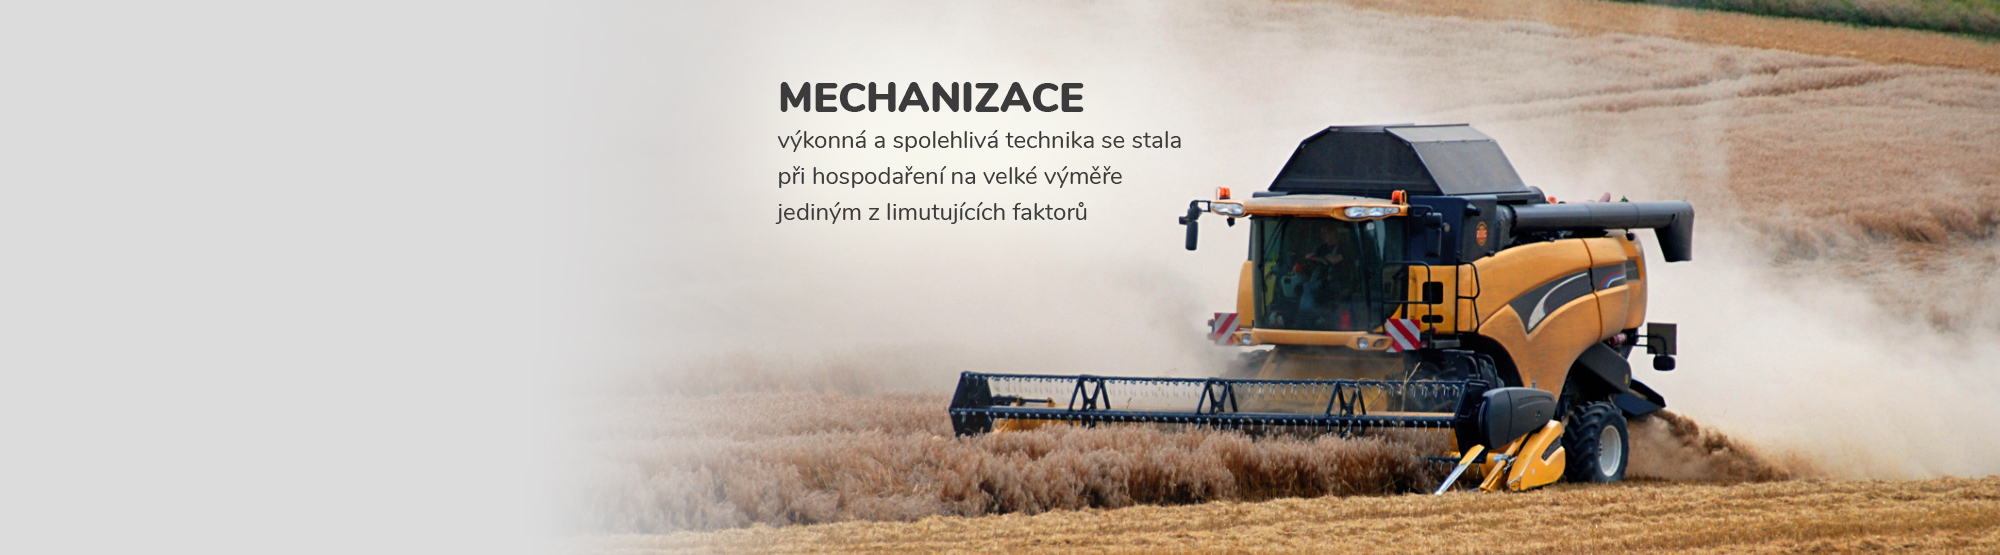 mechanizace